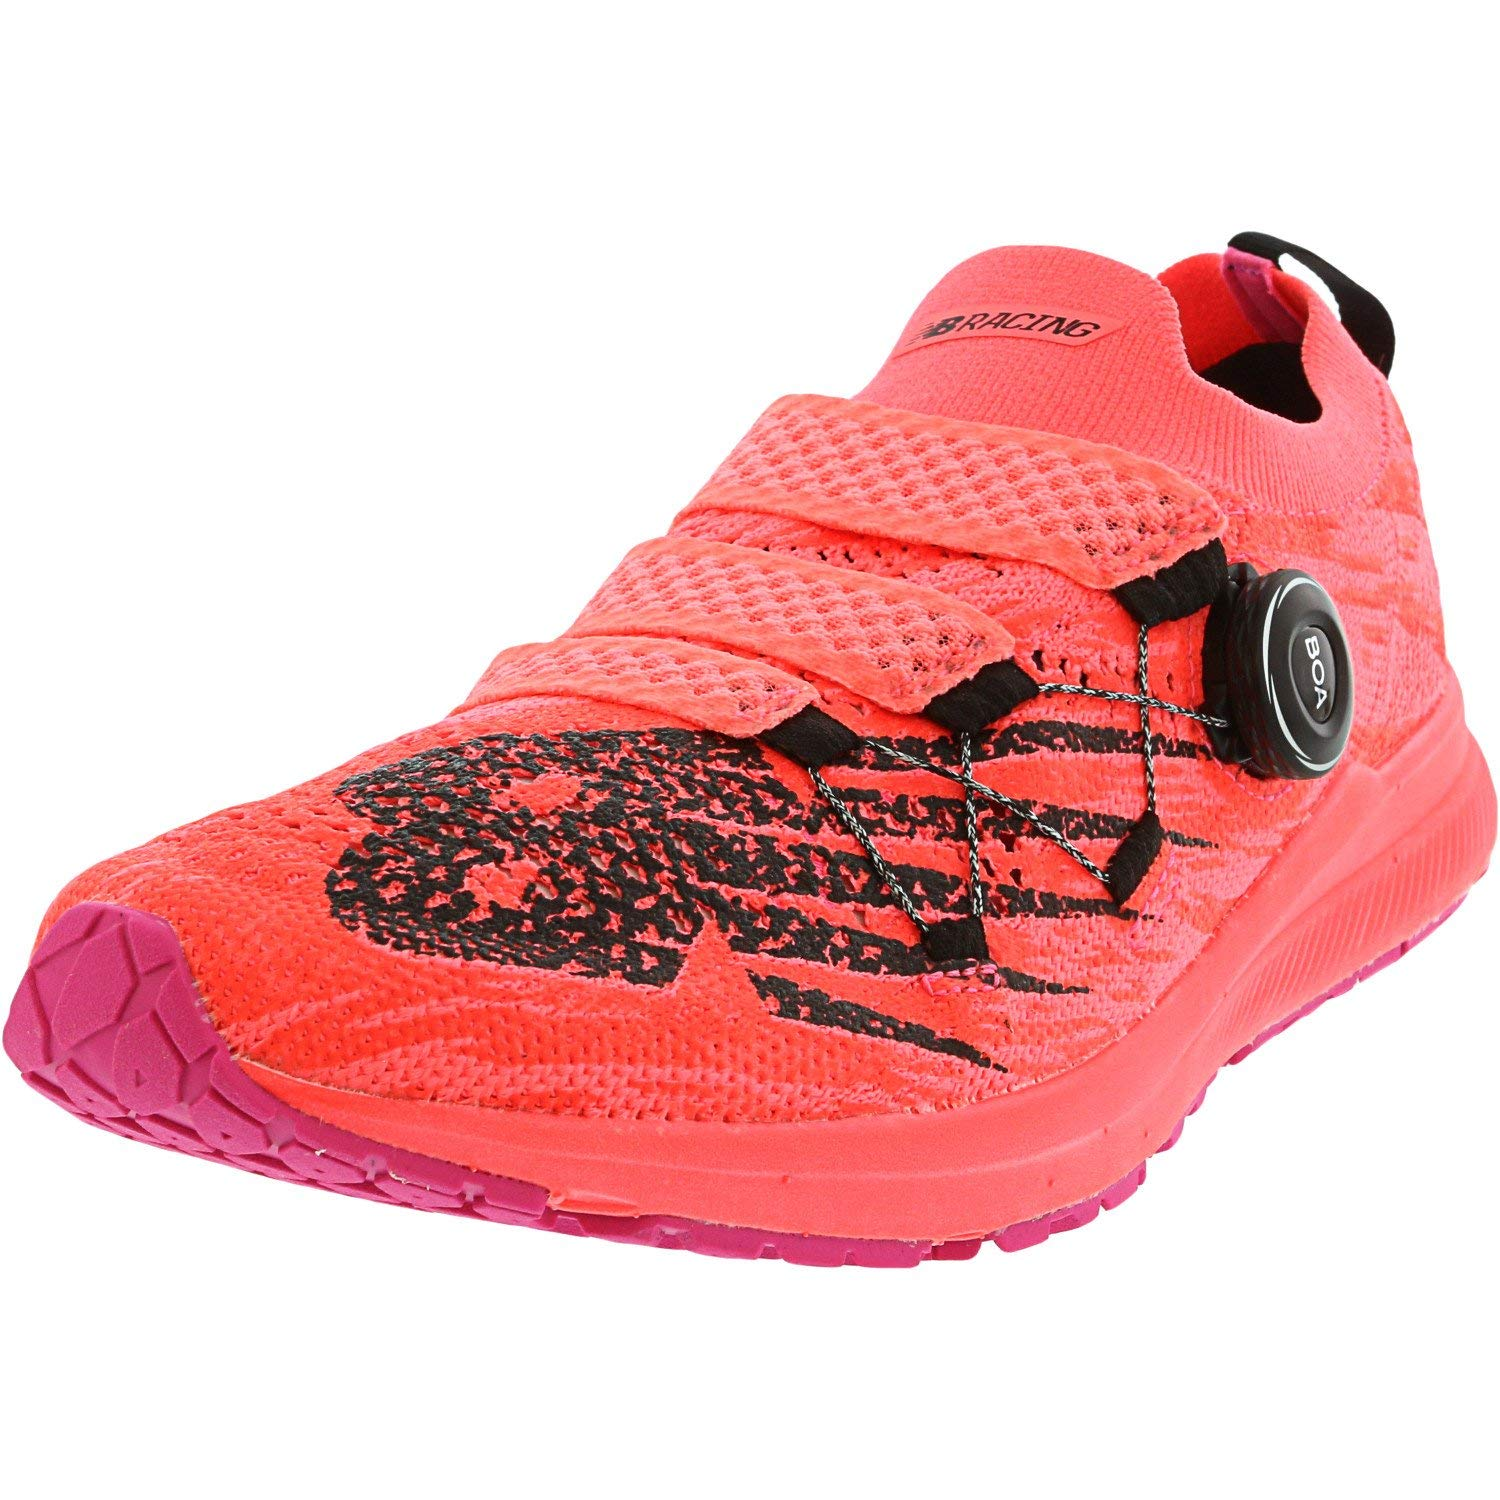 New Balance Womens 1500v4 Running Shoe: New Balance: Amazon.es: Zapatos y complementos